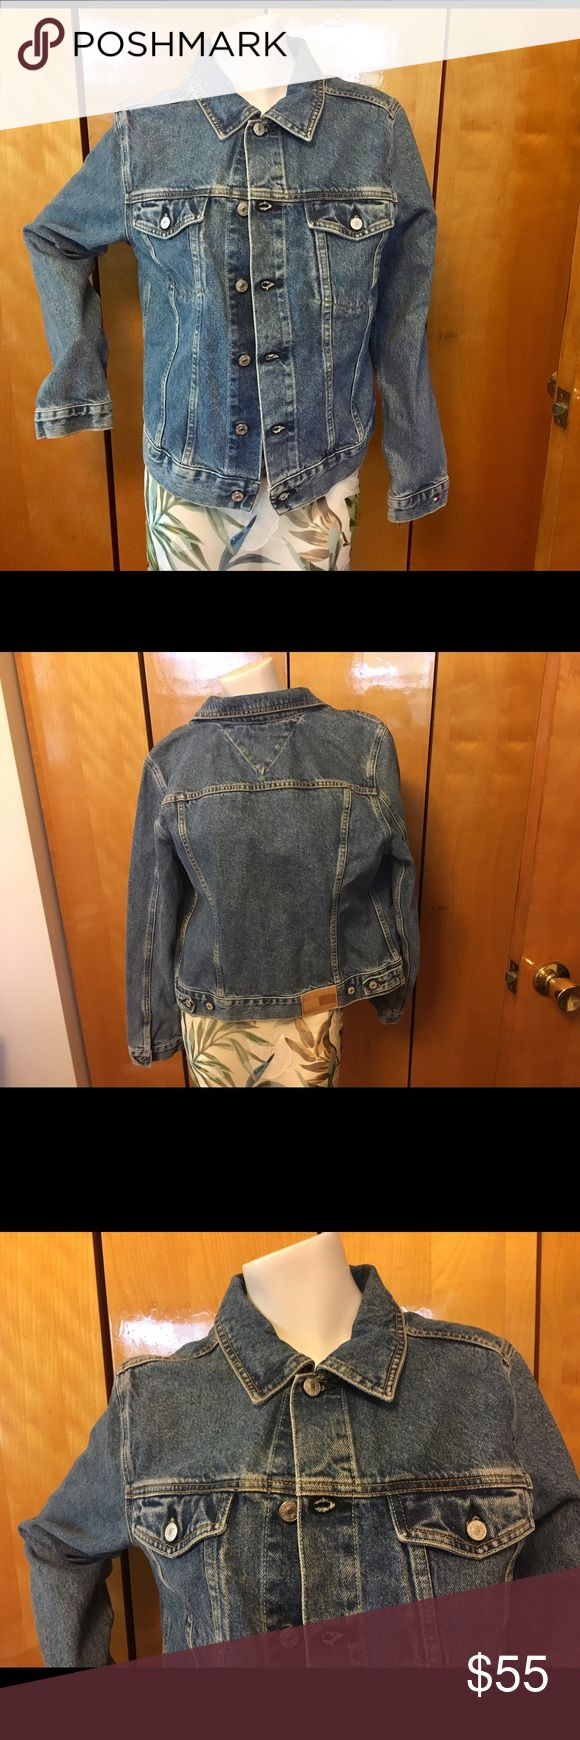 Tommy Hilfiger Denim Jacket. A Closet Essential. An Androgynous Piece. A throw back Denim jacket.  Classic Hilfiger. Size Large.  EUC Tommy Hilfiger Jackets & Coats Jean Jackets